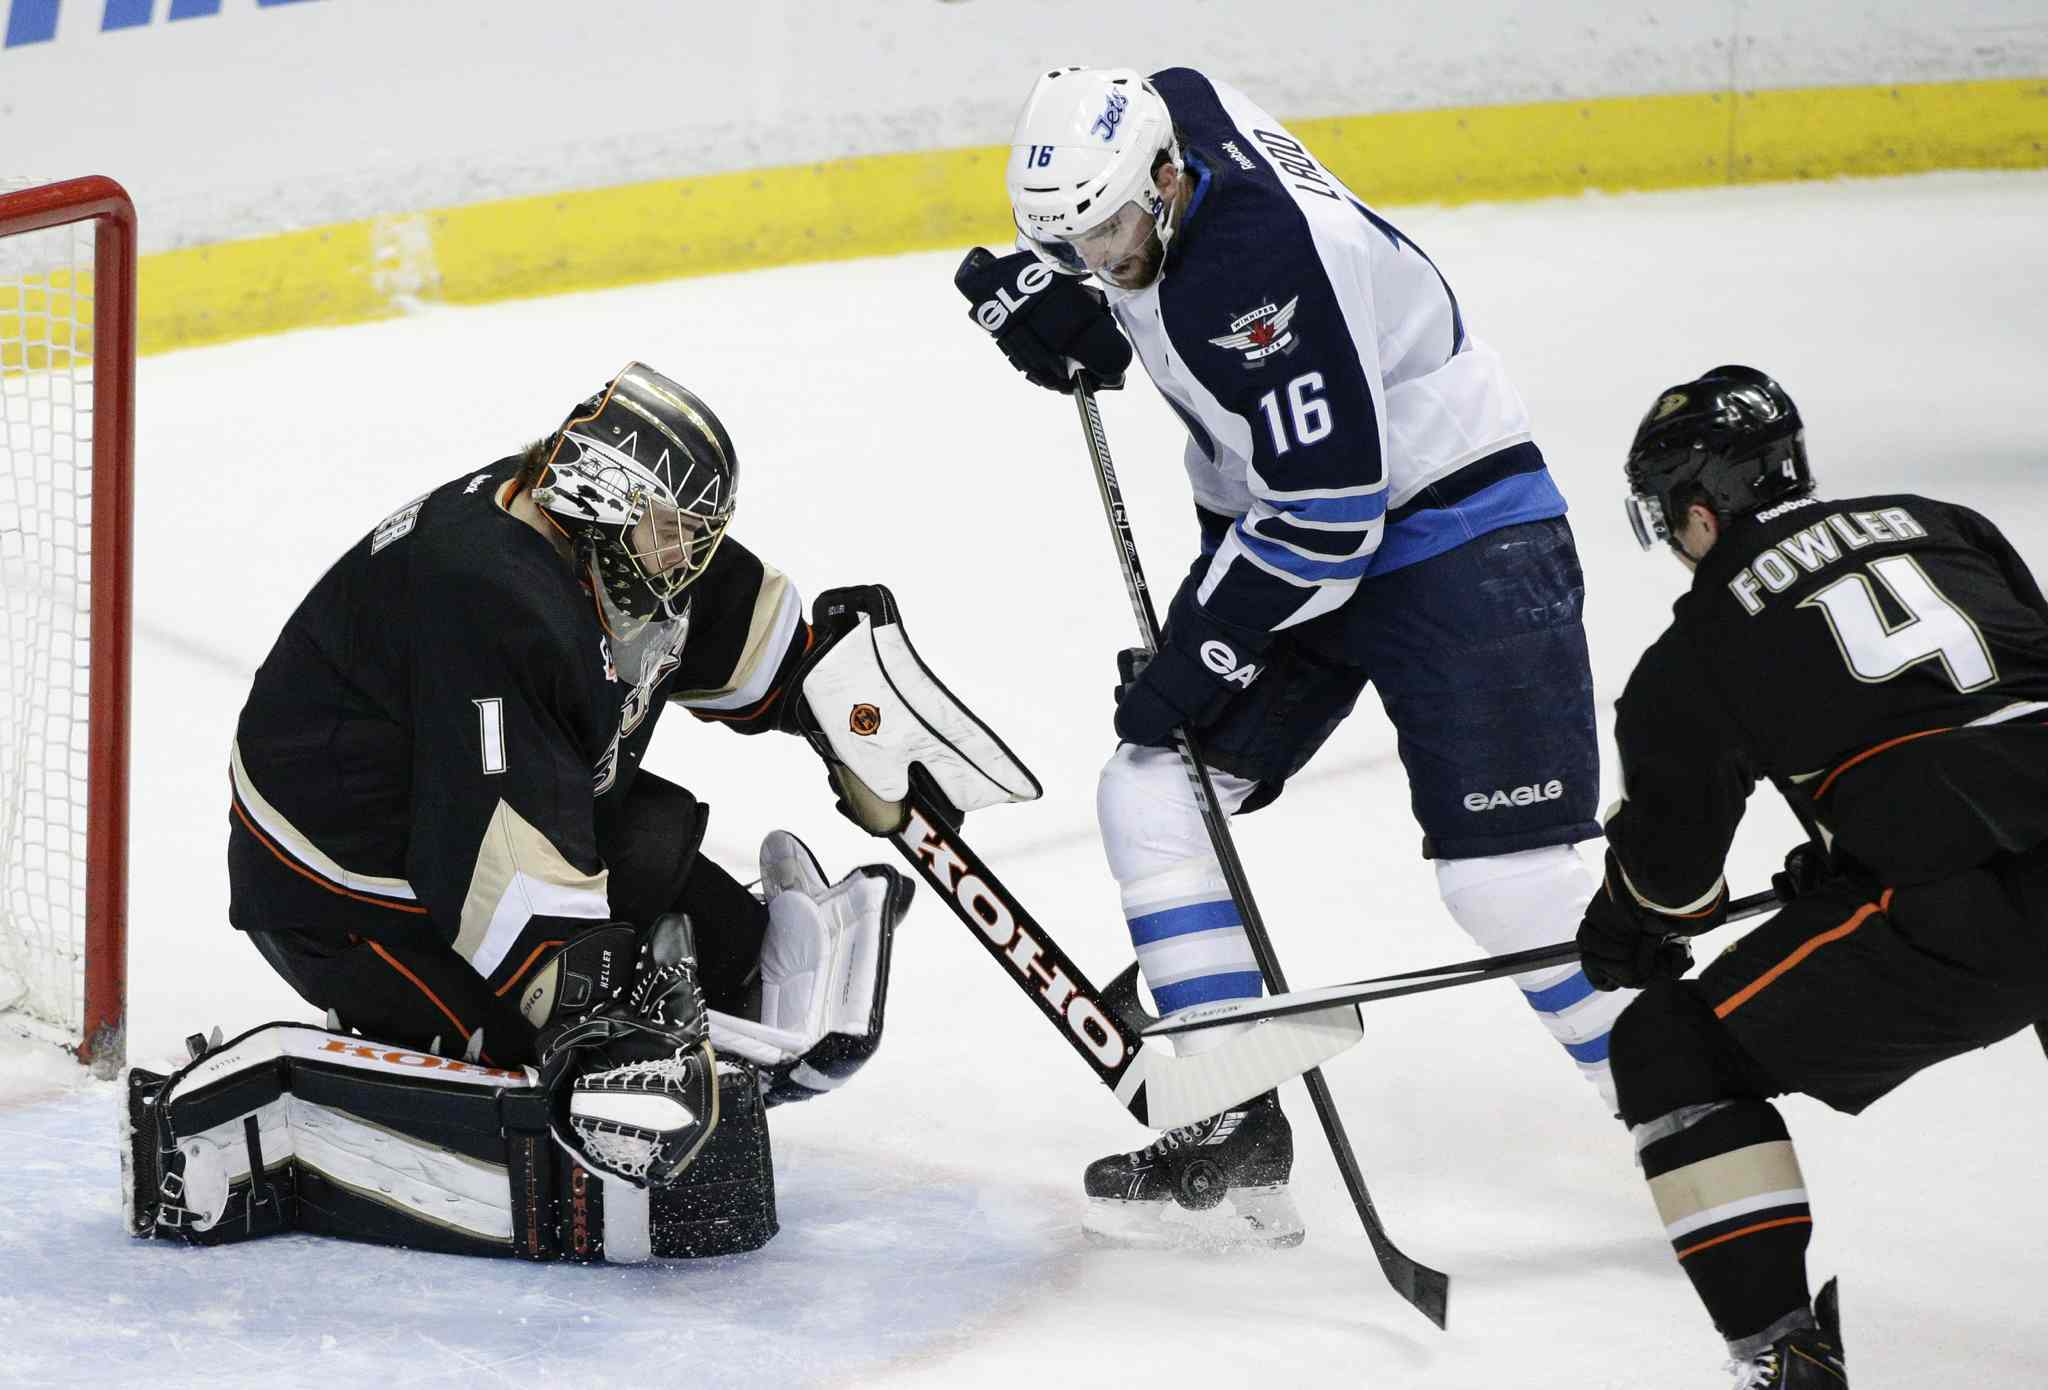 Winnipeg Jets' Andrew Ladd (16) tries to score against Anaheim Ducks' goalie Jonas Hiller, left, as the Ducks' Cam Fowler defends during first period in Anaheim Tuesday.